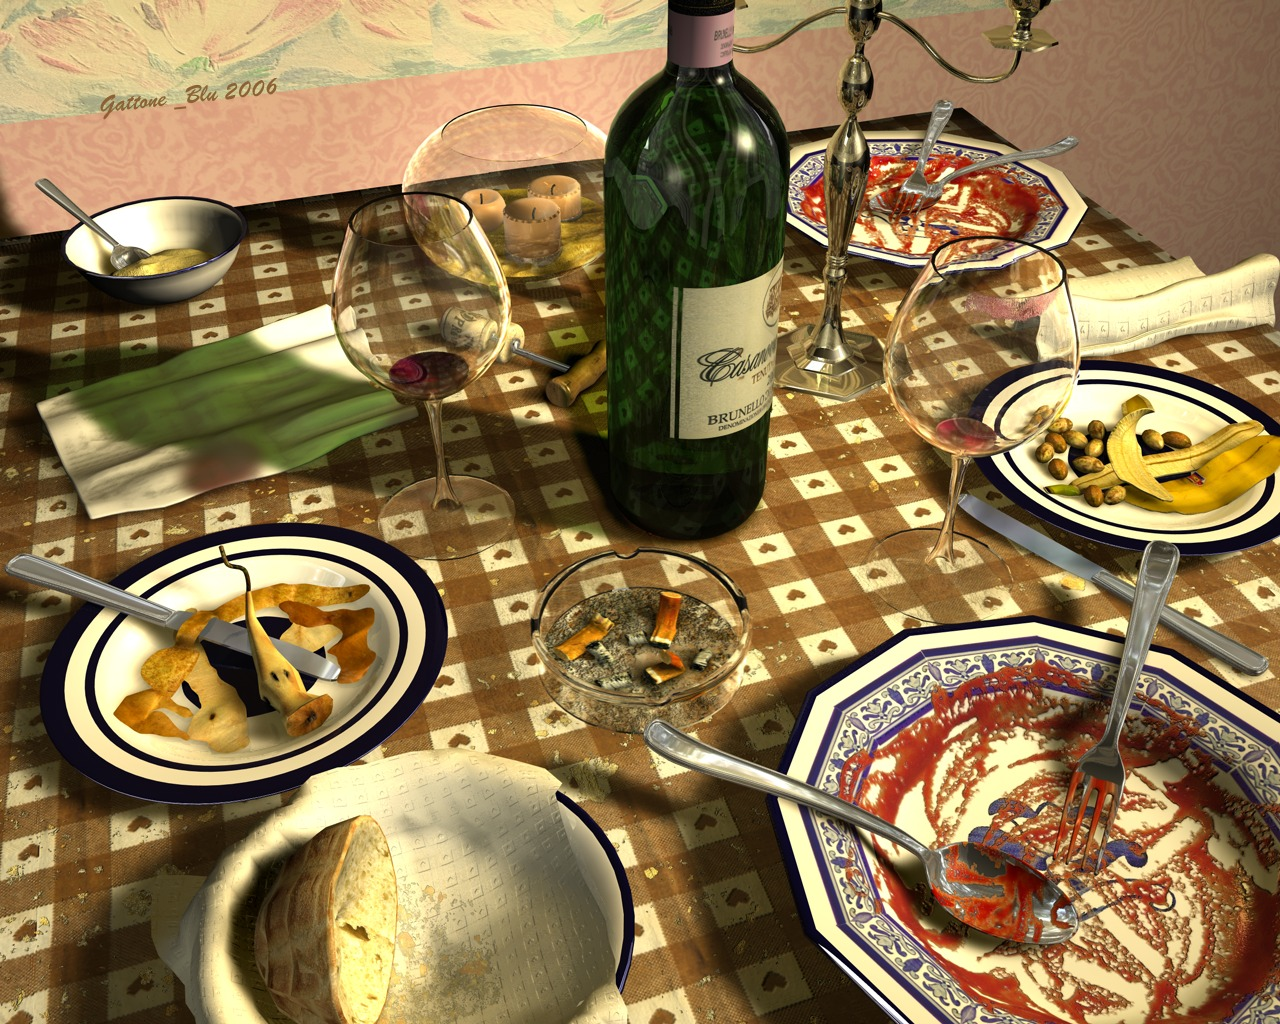 After the supper